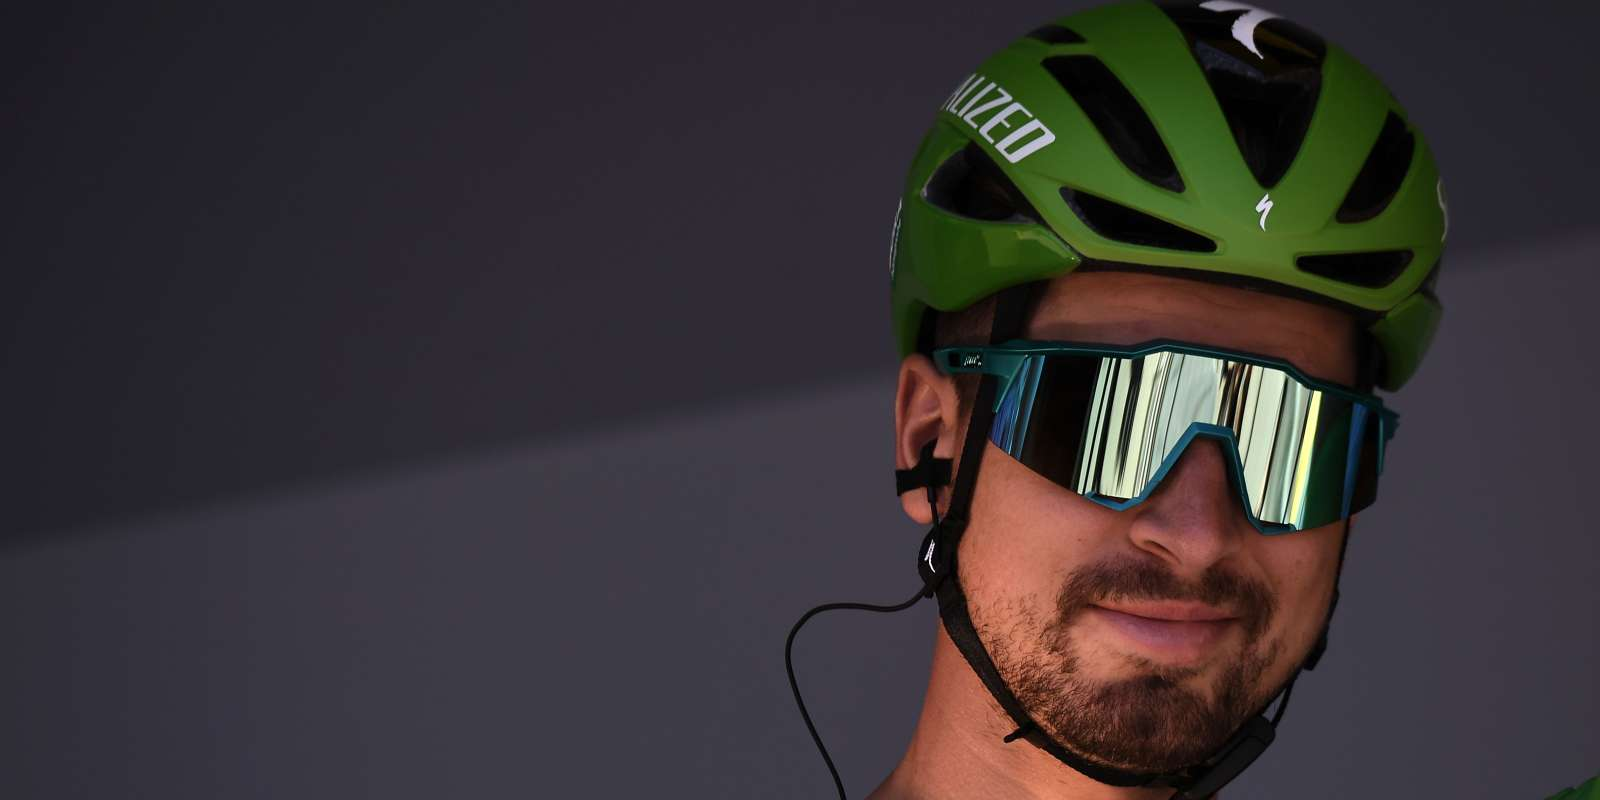 Slovakia's Peter Sagan, wearing the best sprinter's green jersey waits in the departing area during the signing in ceremony before the start of the fifth stage of the 106th edition of the Tour de France cycling race between Saint-Die-des-Vosges and Colmar, in Saint-Die-des-Vosges, eastern France, on July 10, 2019. / AFP / JEFF PACHOUD